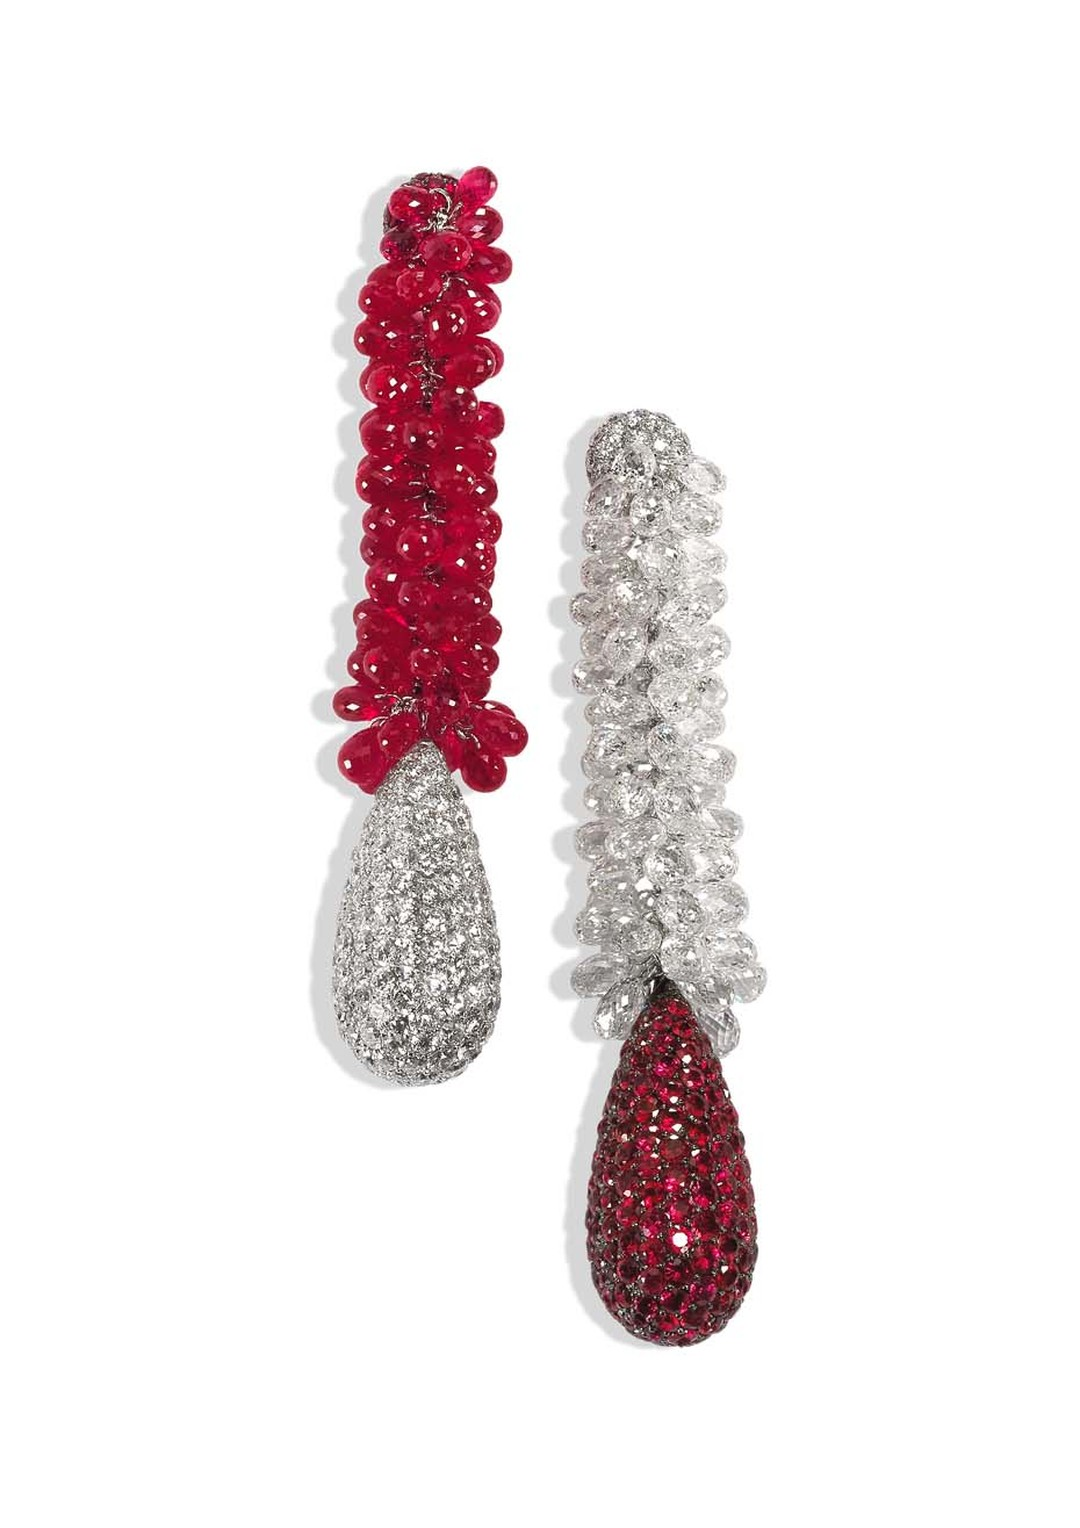 The de GRISOGONO white gold earrings featuring 236 rubies, 236 white diamonds, 81 briolette diamonds and 81 briolette rubies worn by Riley Keough